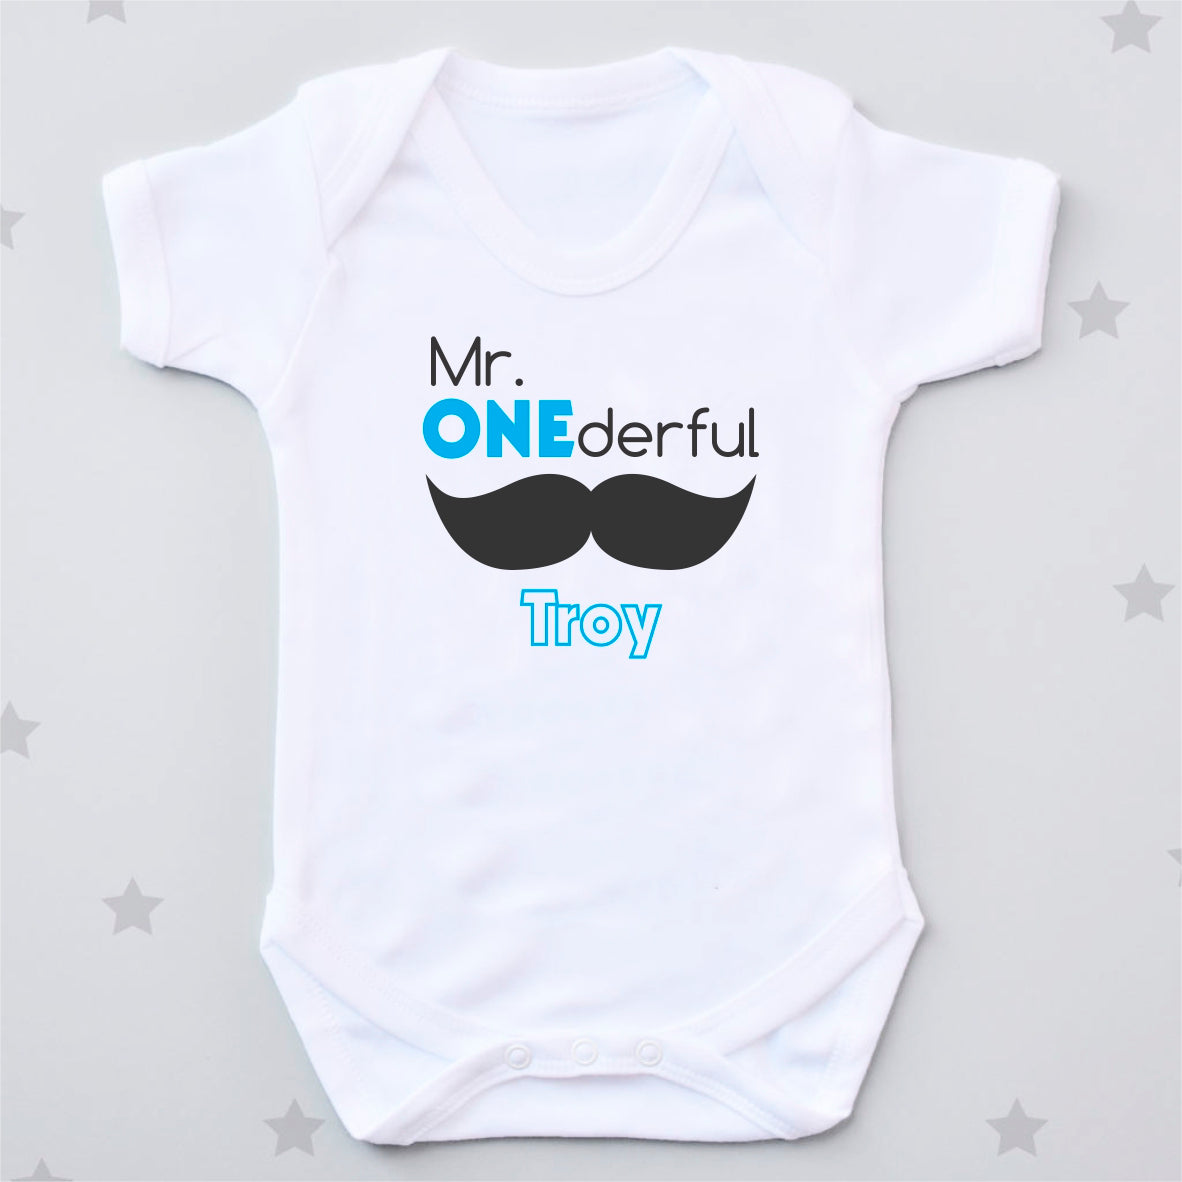 Personalised Baby Vests - Our Precious Moments